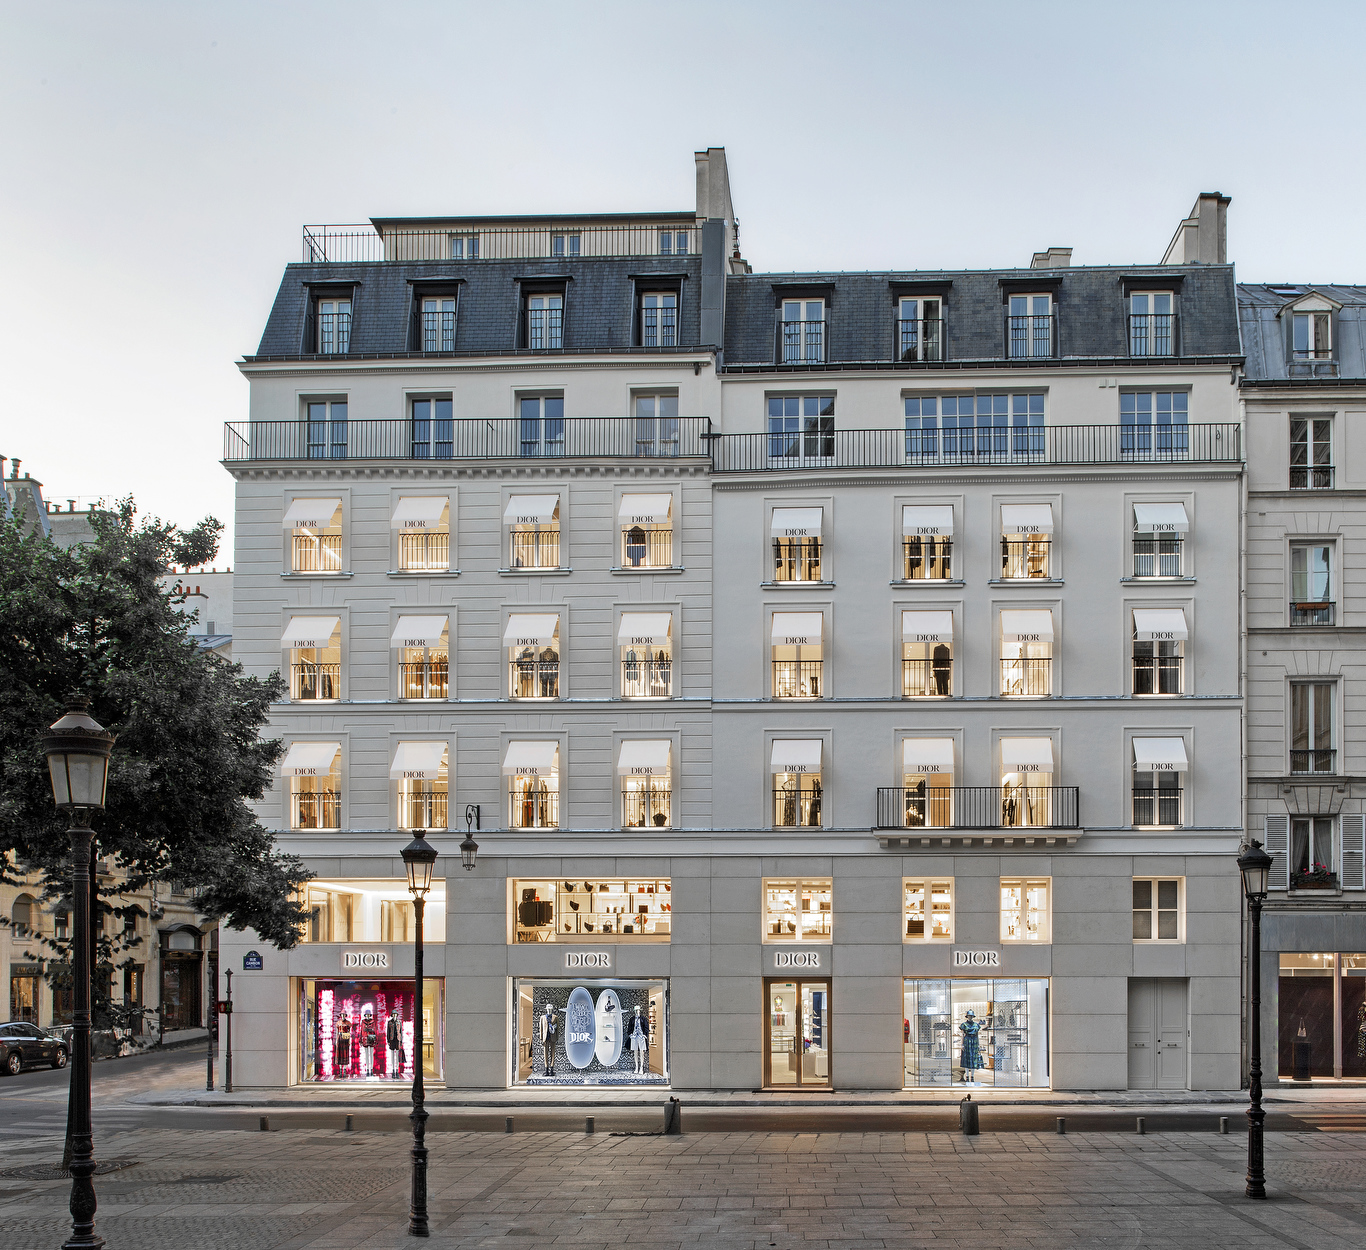 The exterior of the new Dior boutique on Rue Saint-Honoré in Paris